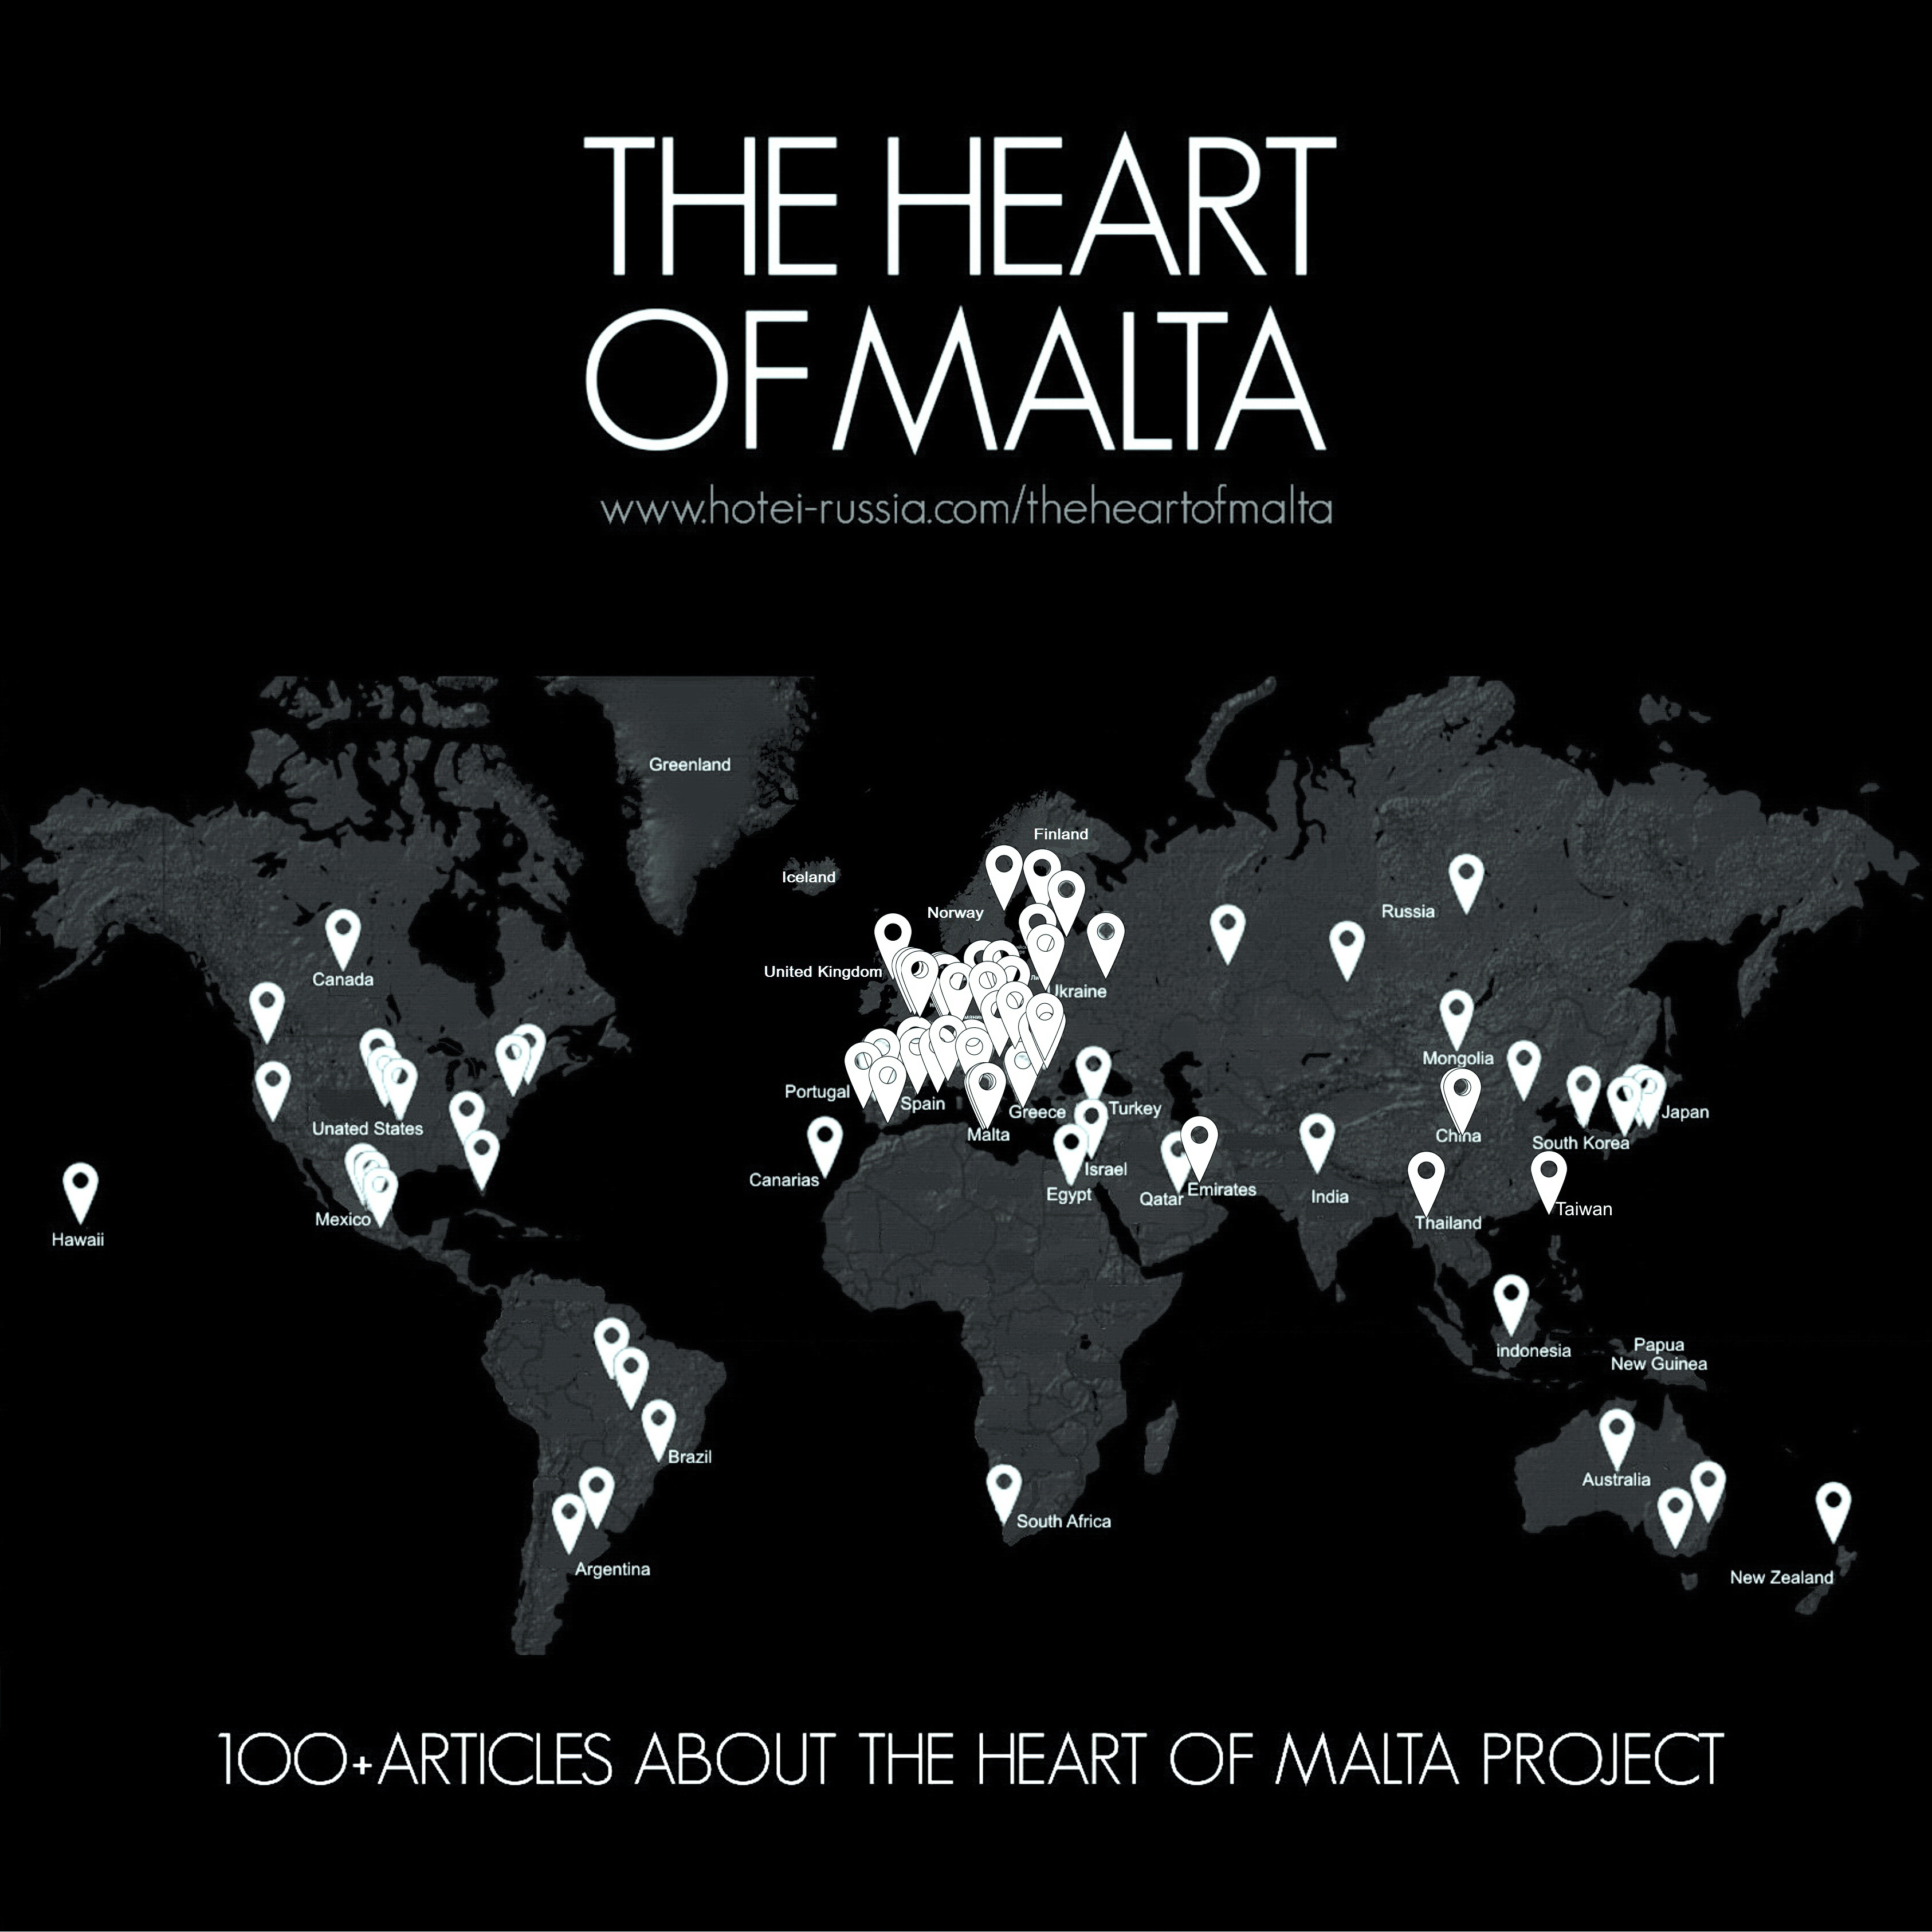 MEDIA COVERAGE OF THE HEART OF MALTA